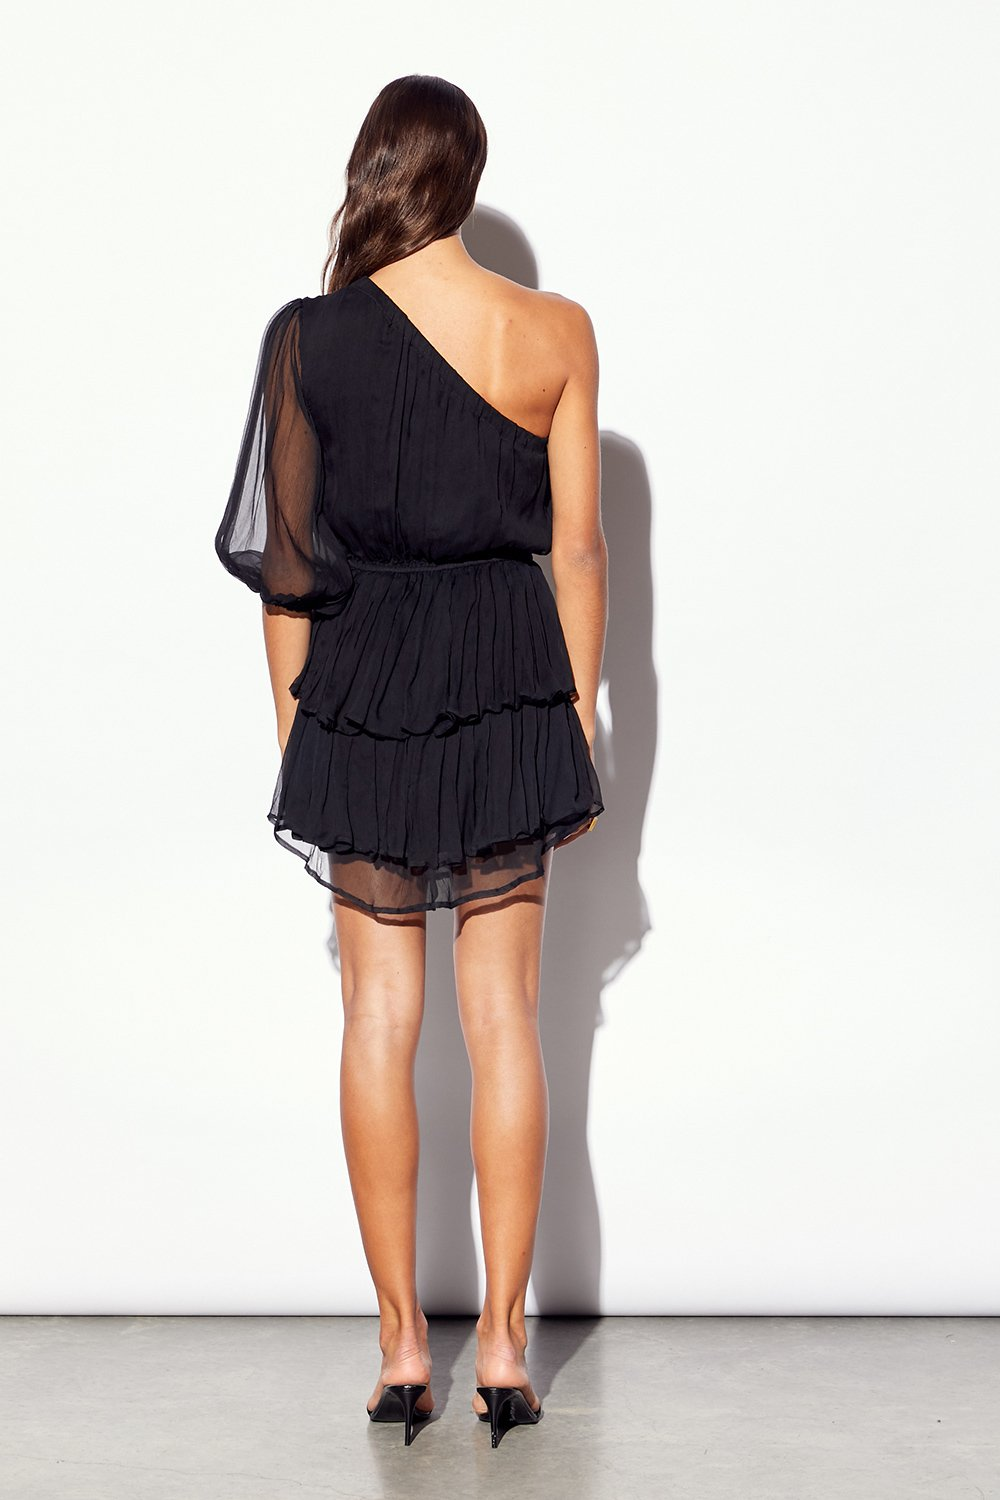 MLM Reims Silk Dress in Black